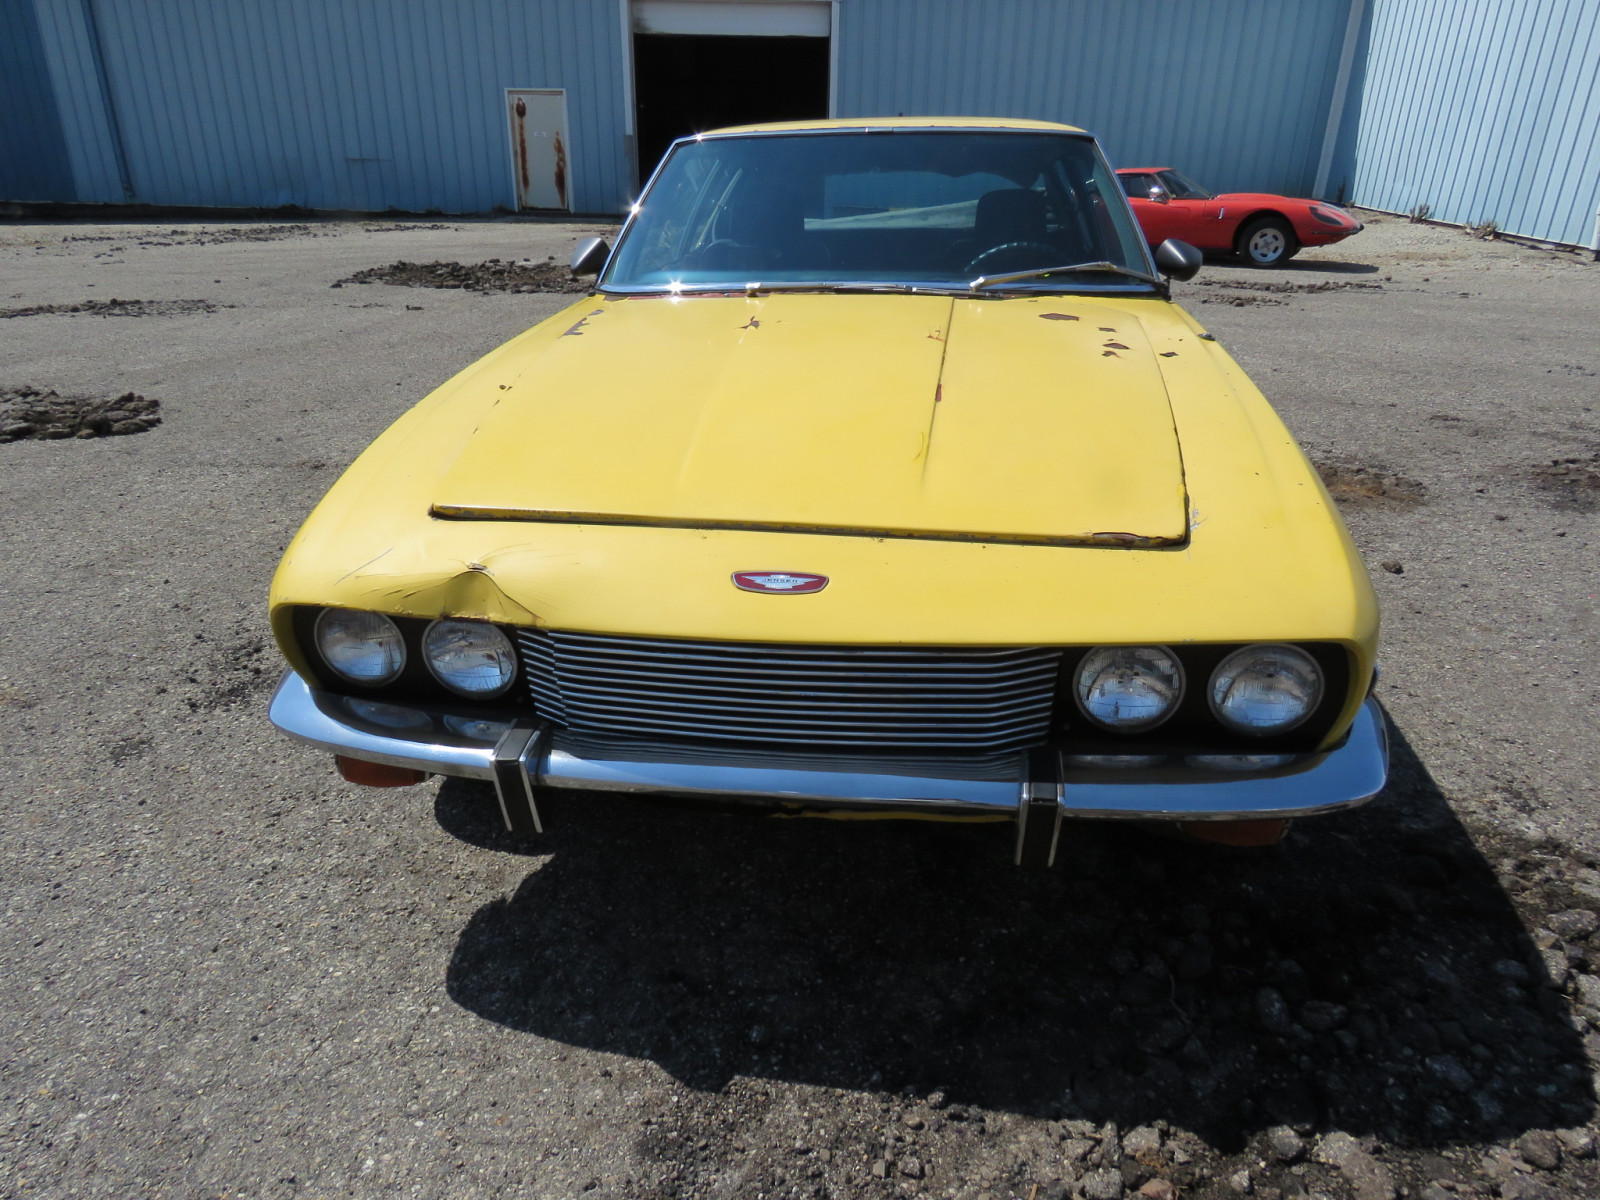 1971 Jensen Interceptor - Image 2